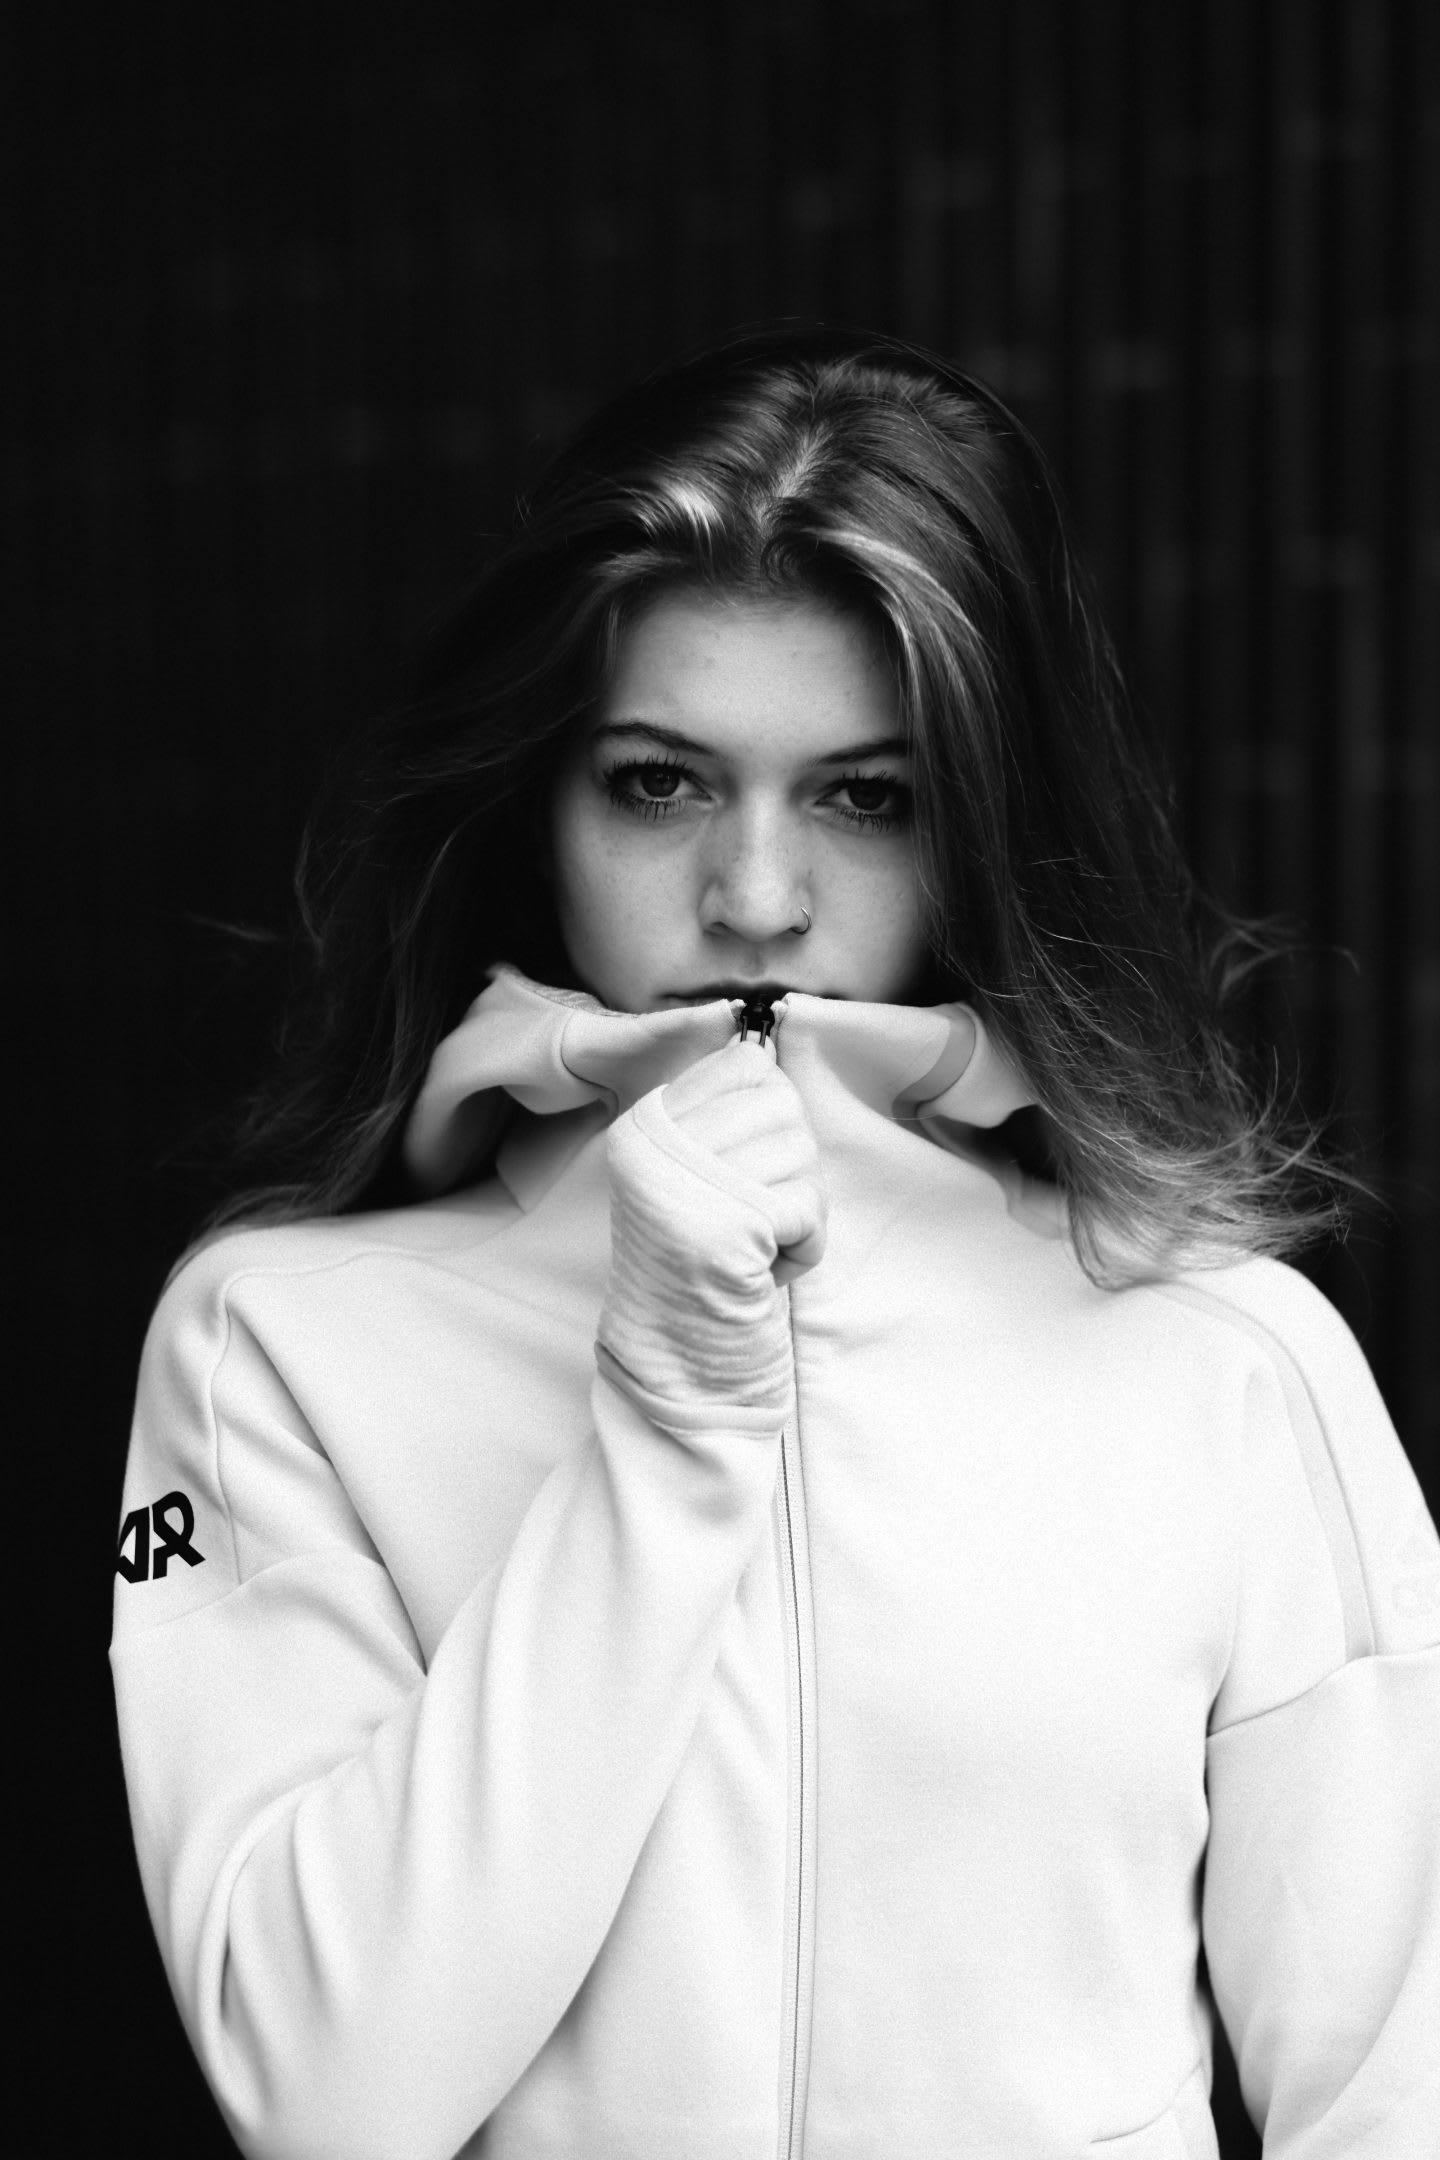 Black and white picture of a woman wearing a white adidas Runners track top and standing in front of black background, Claudia Sch+¦ttli-Serano_adidas Runners_GamePlan A